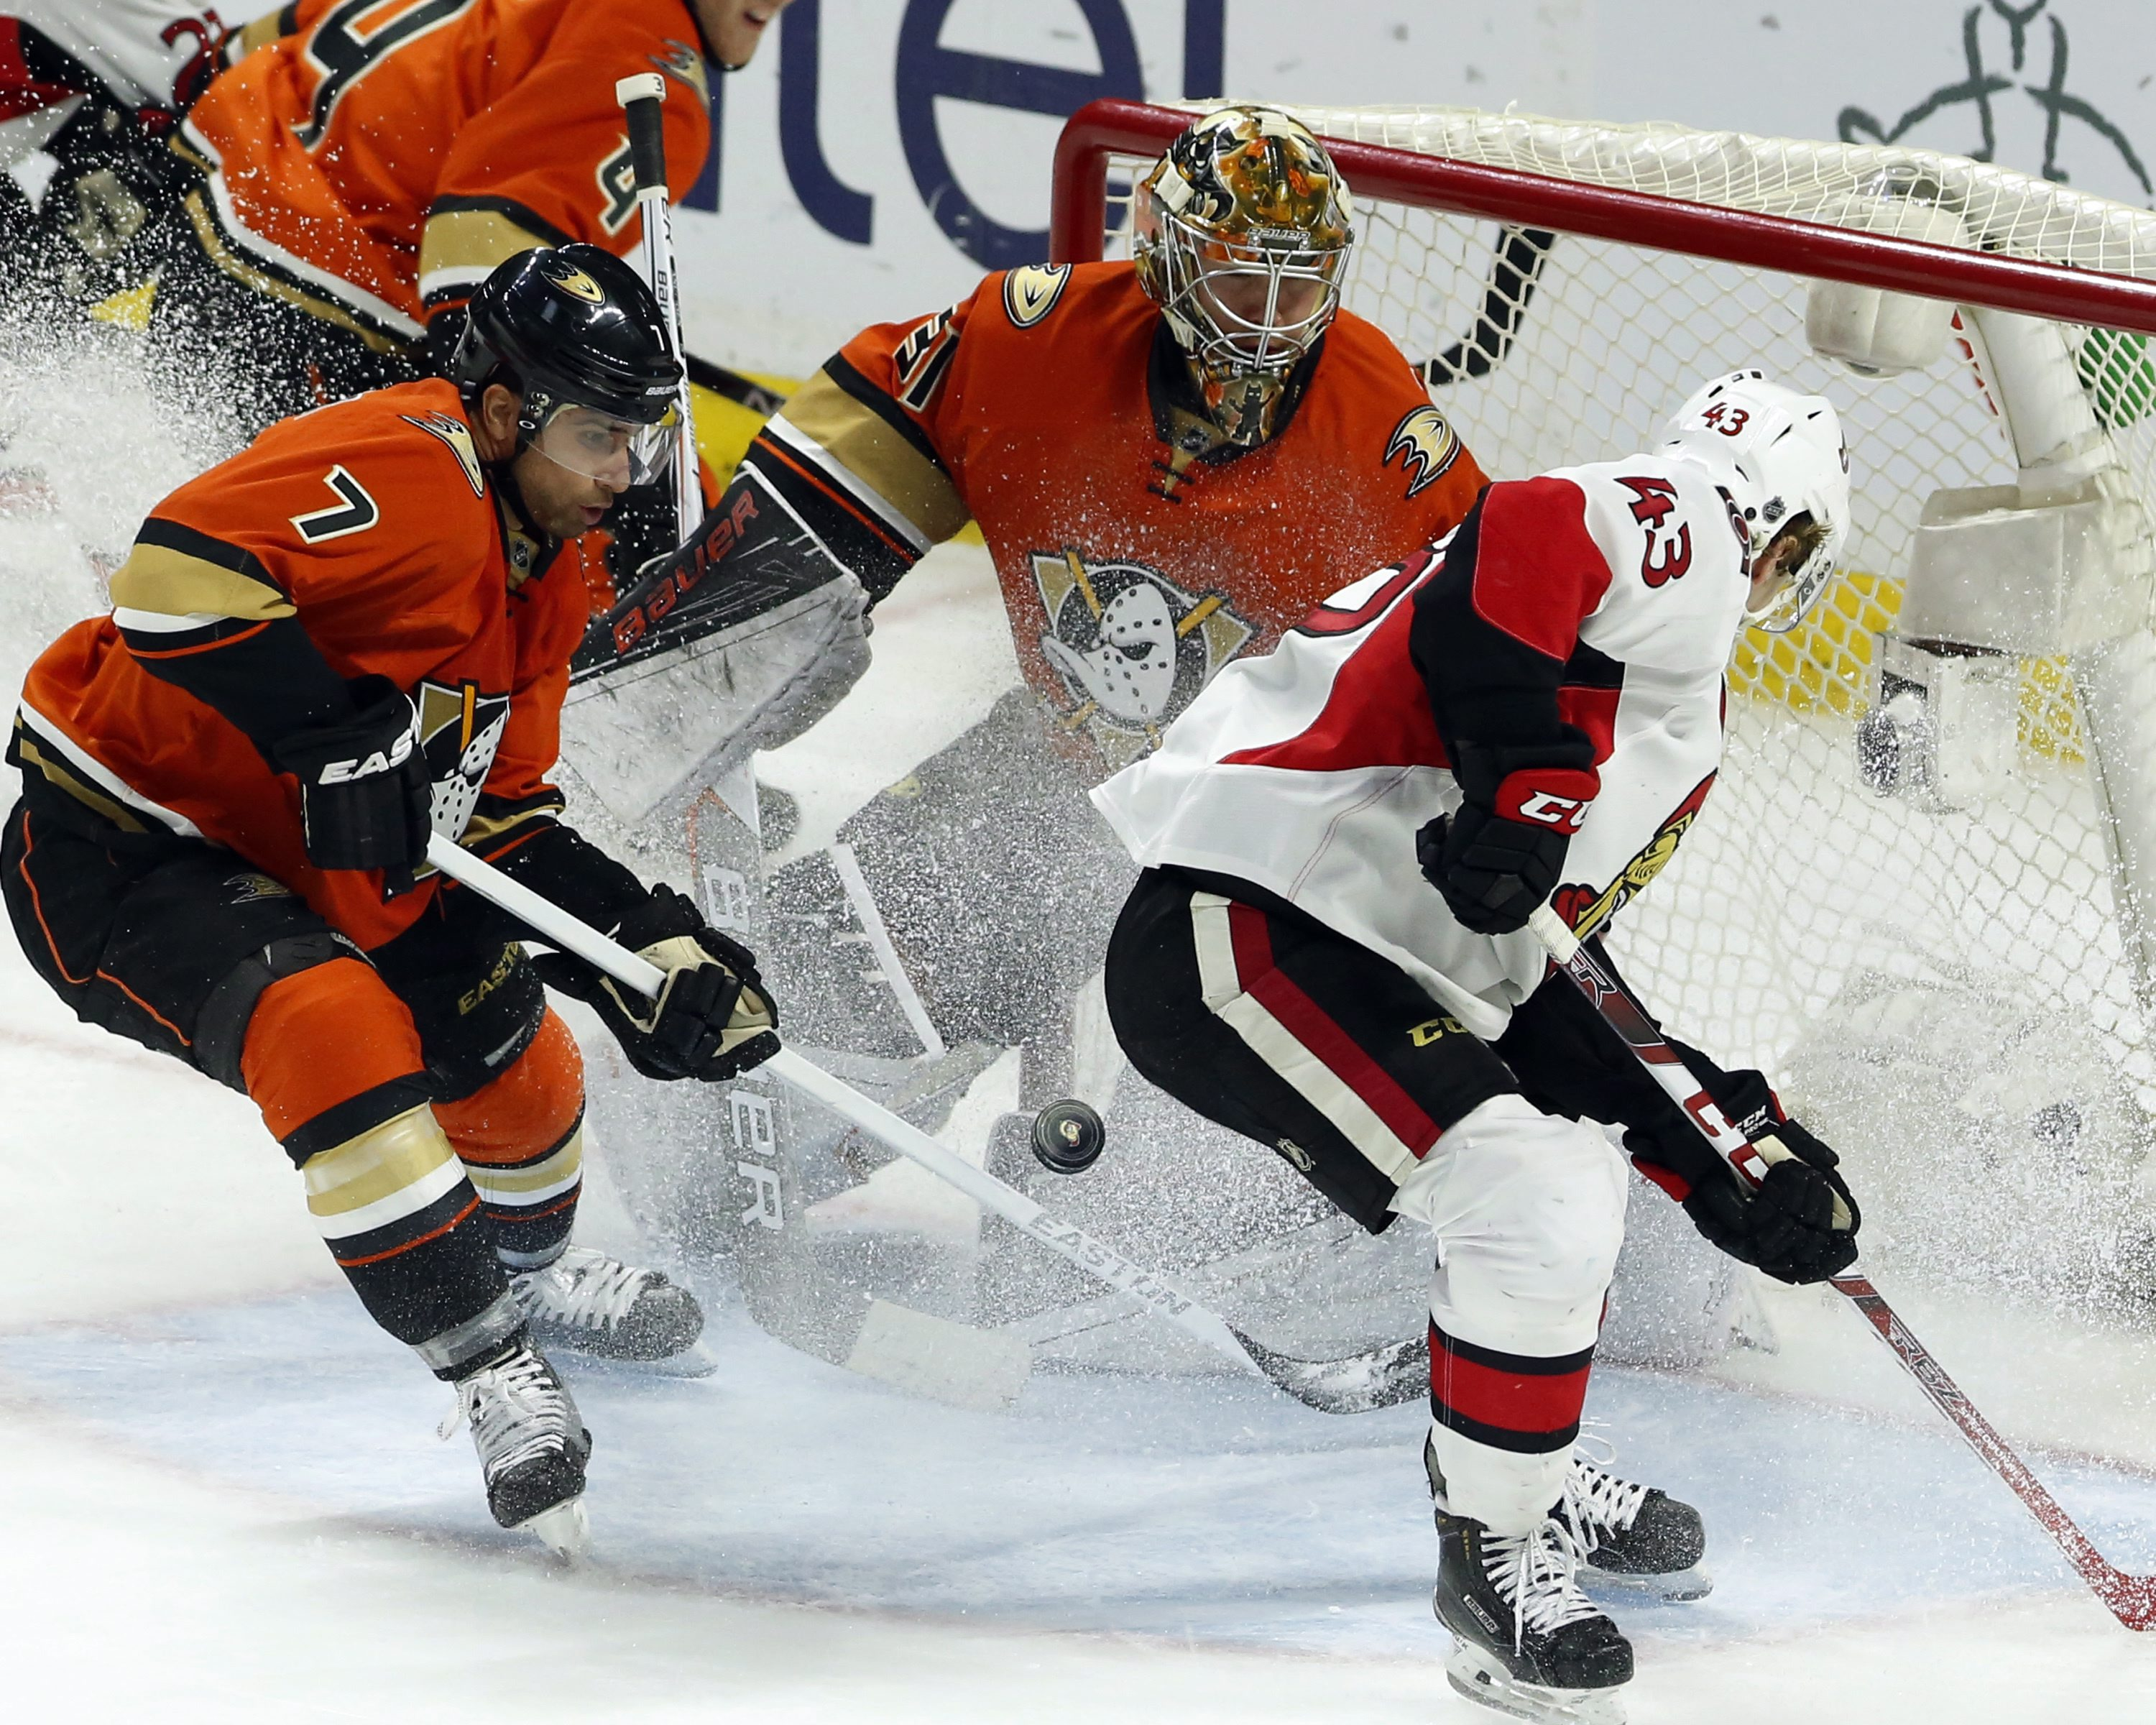 Ottawa Senators' Ryan Dzingel (43) and Anaheim Ducks' Andrew Cogliano (7) and Frederik Andersenn (31) try to gain control of a loose puck during the second period of an NHL hockey game Saturday, March 26, 2016, in Ottawa, Ontario. (Fred Chartrand/The Cana